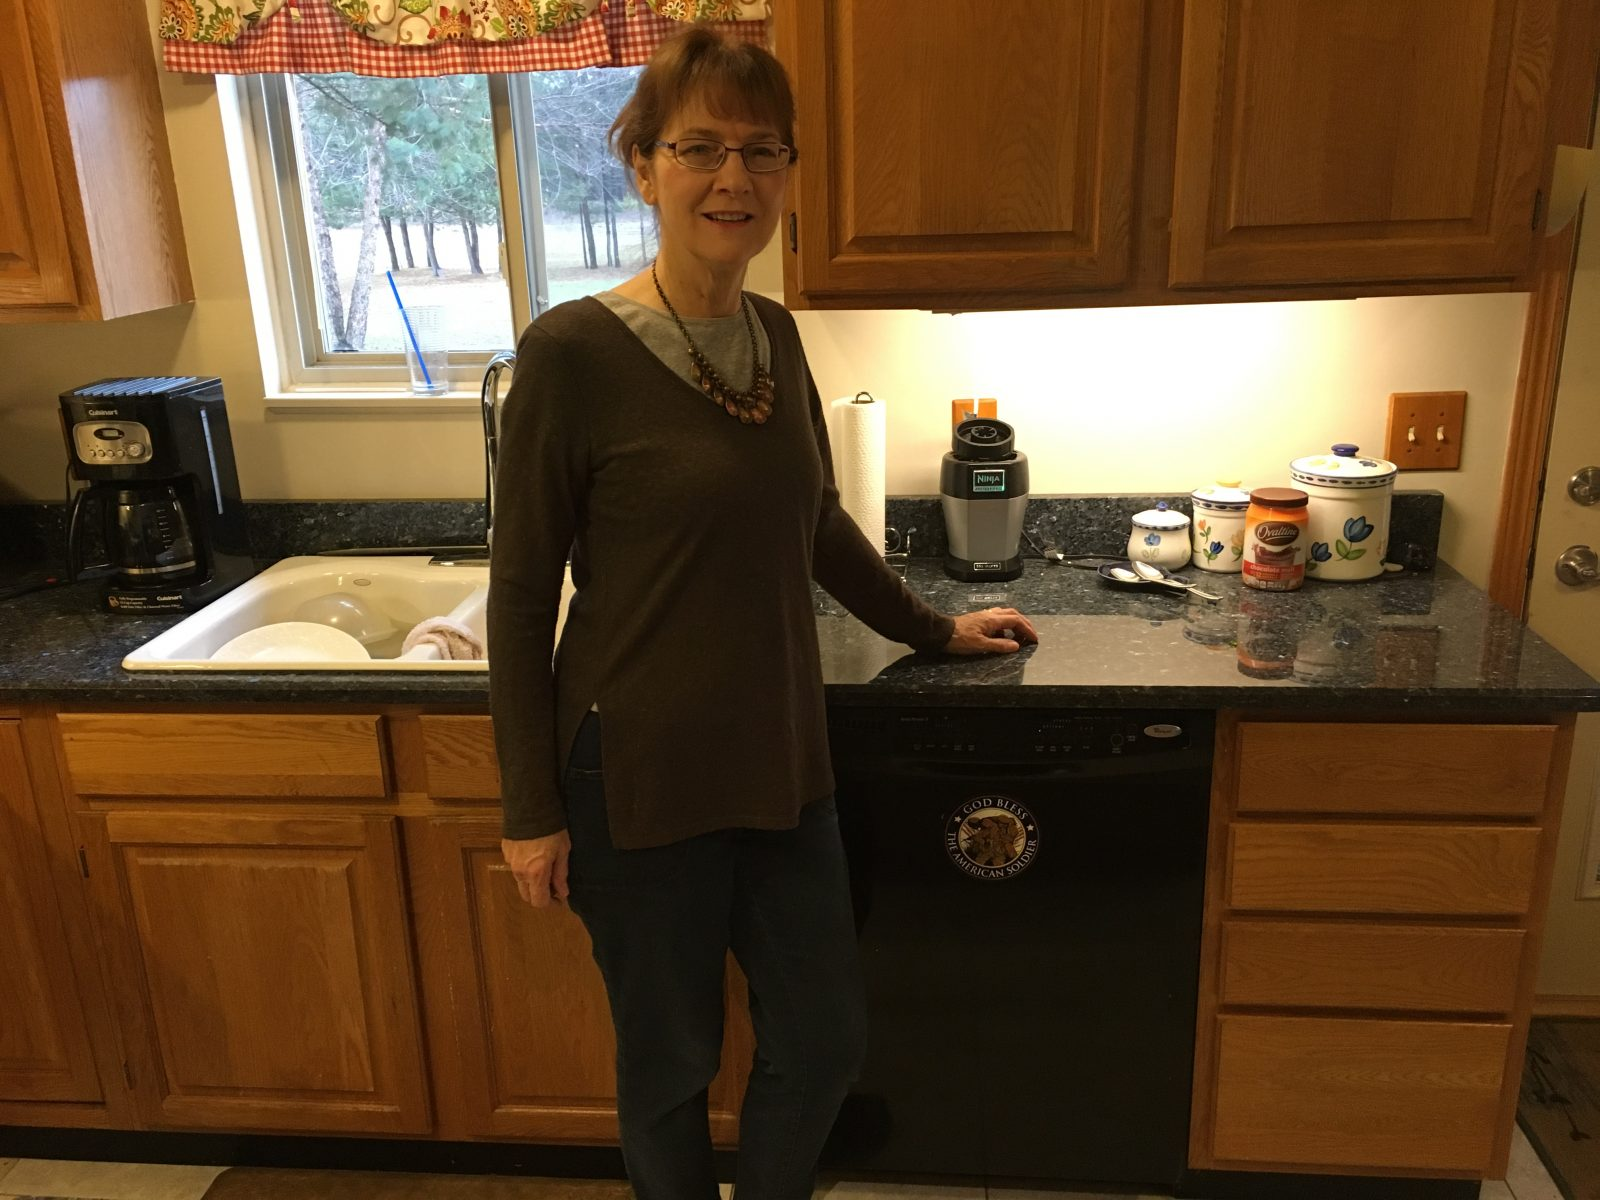 I Bought This Common Kitchen Appliance & Earned 3,175 Chase Ultimate Rewards Points – Enough for a One-Way Flight!